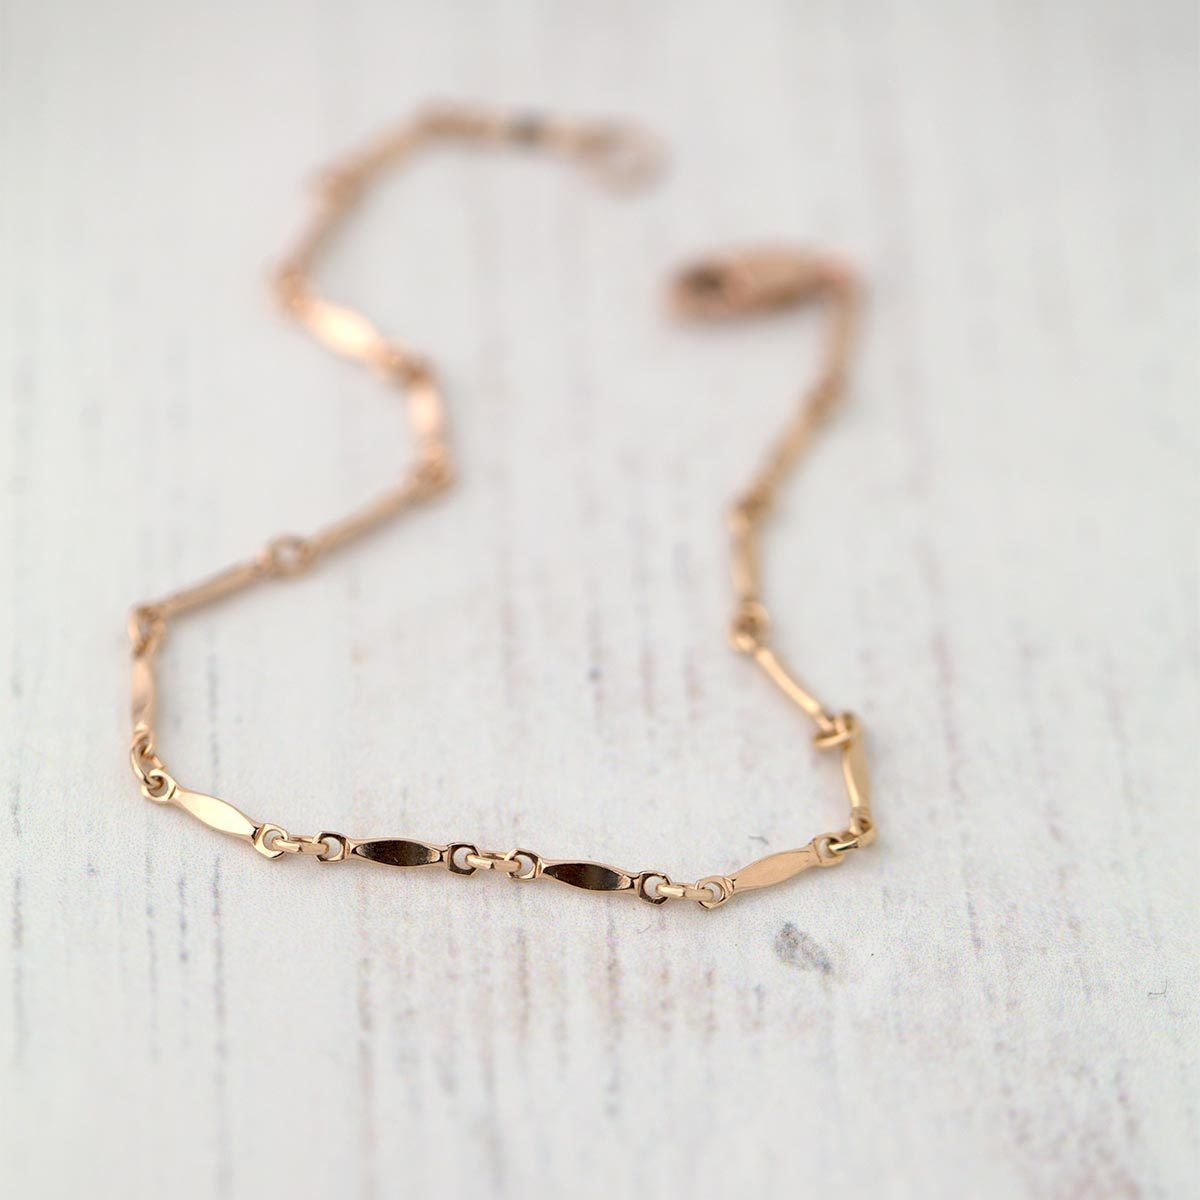 Rose Gold Bracelet - Handmade Jewelry by Burnish